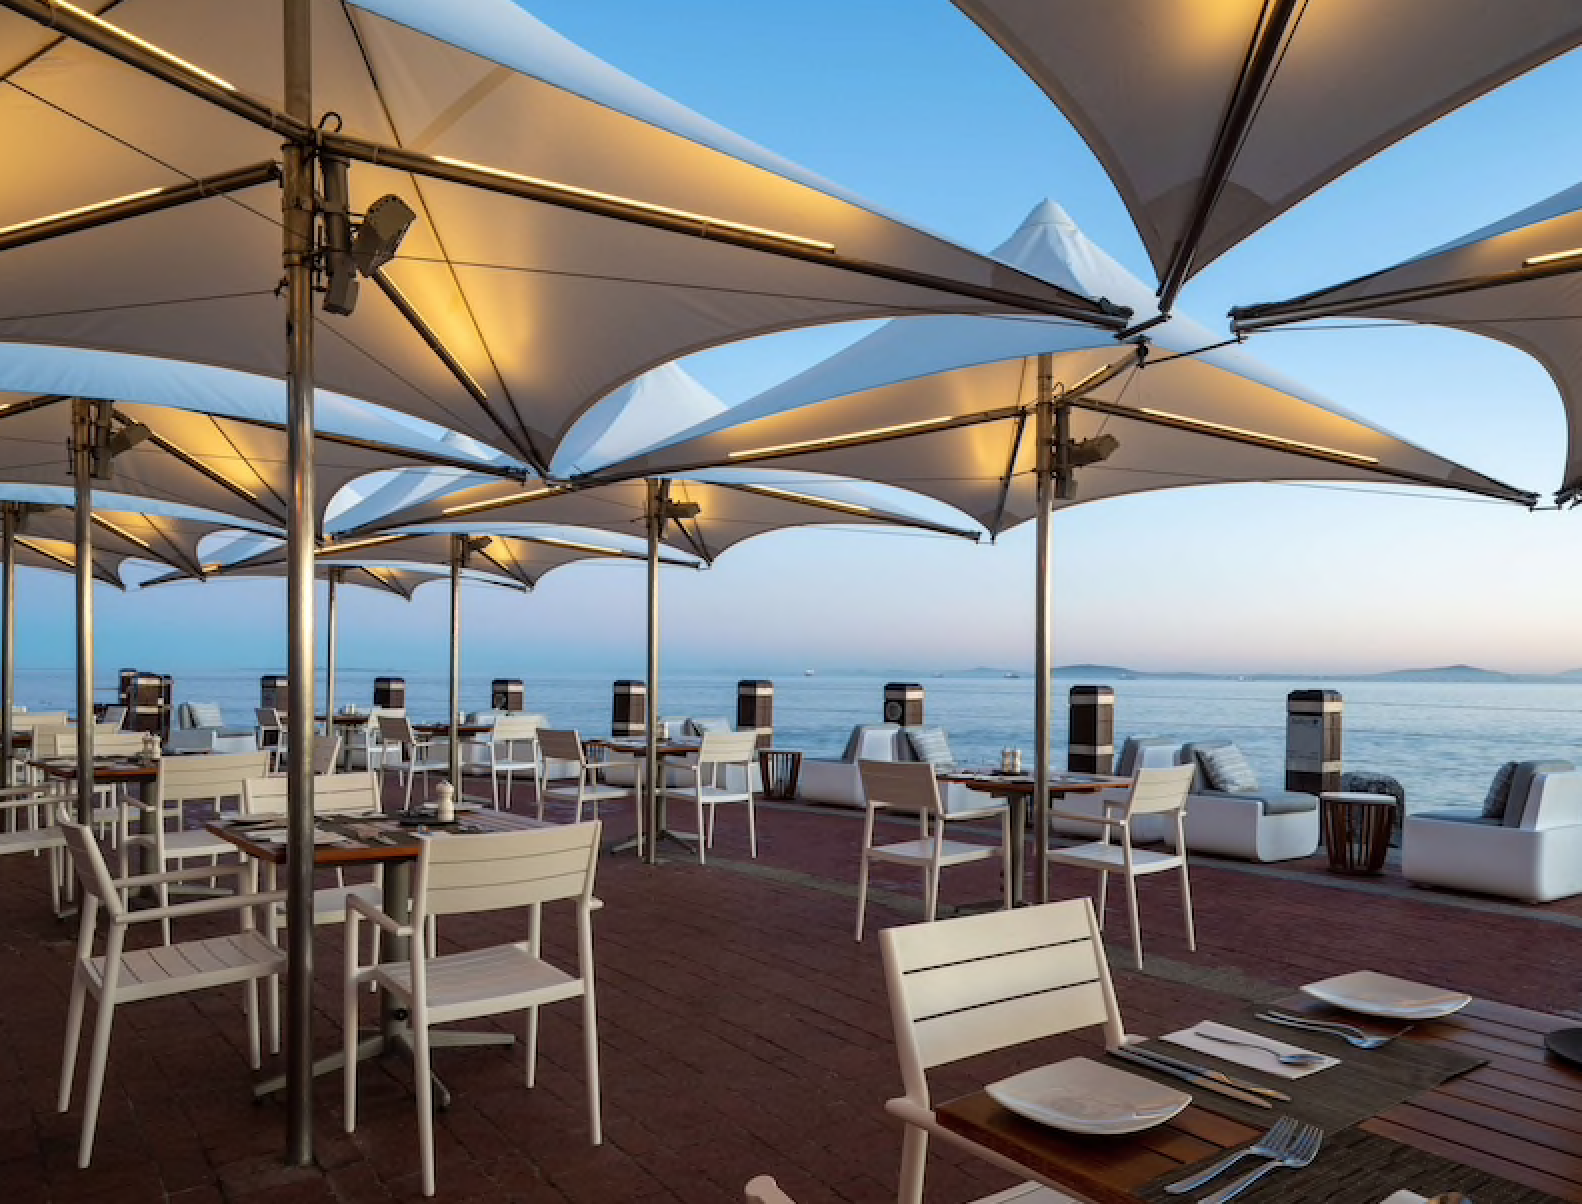 tobagos-terrace-restaurant-radisson-blu-waterfront-review